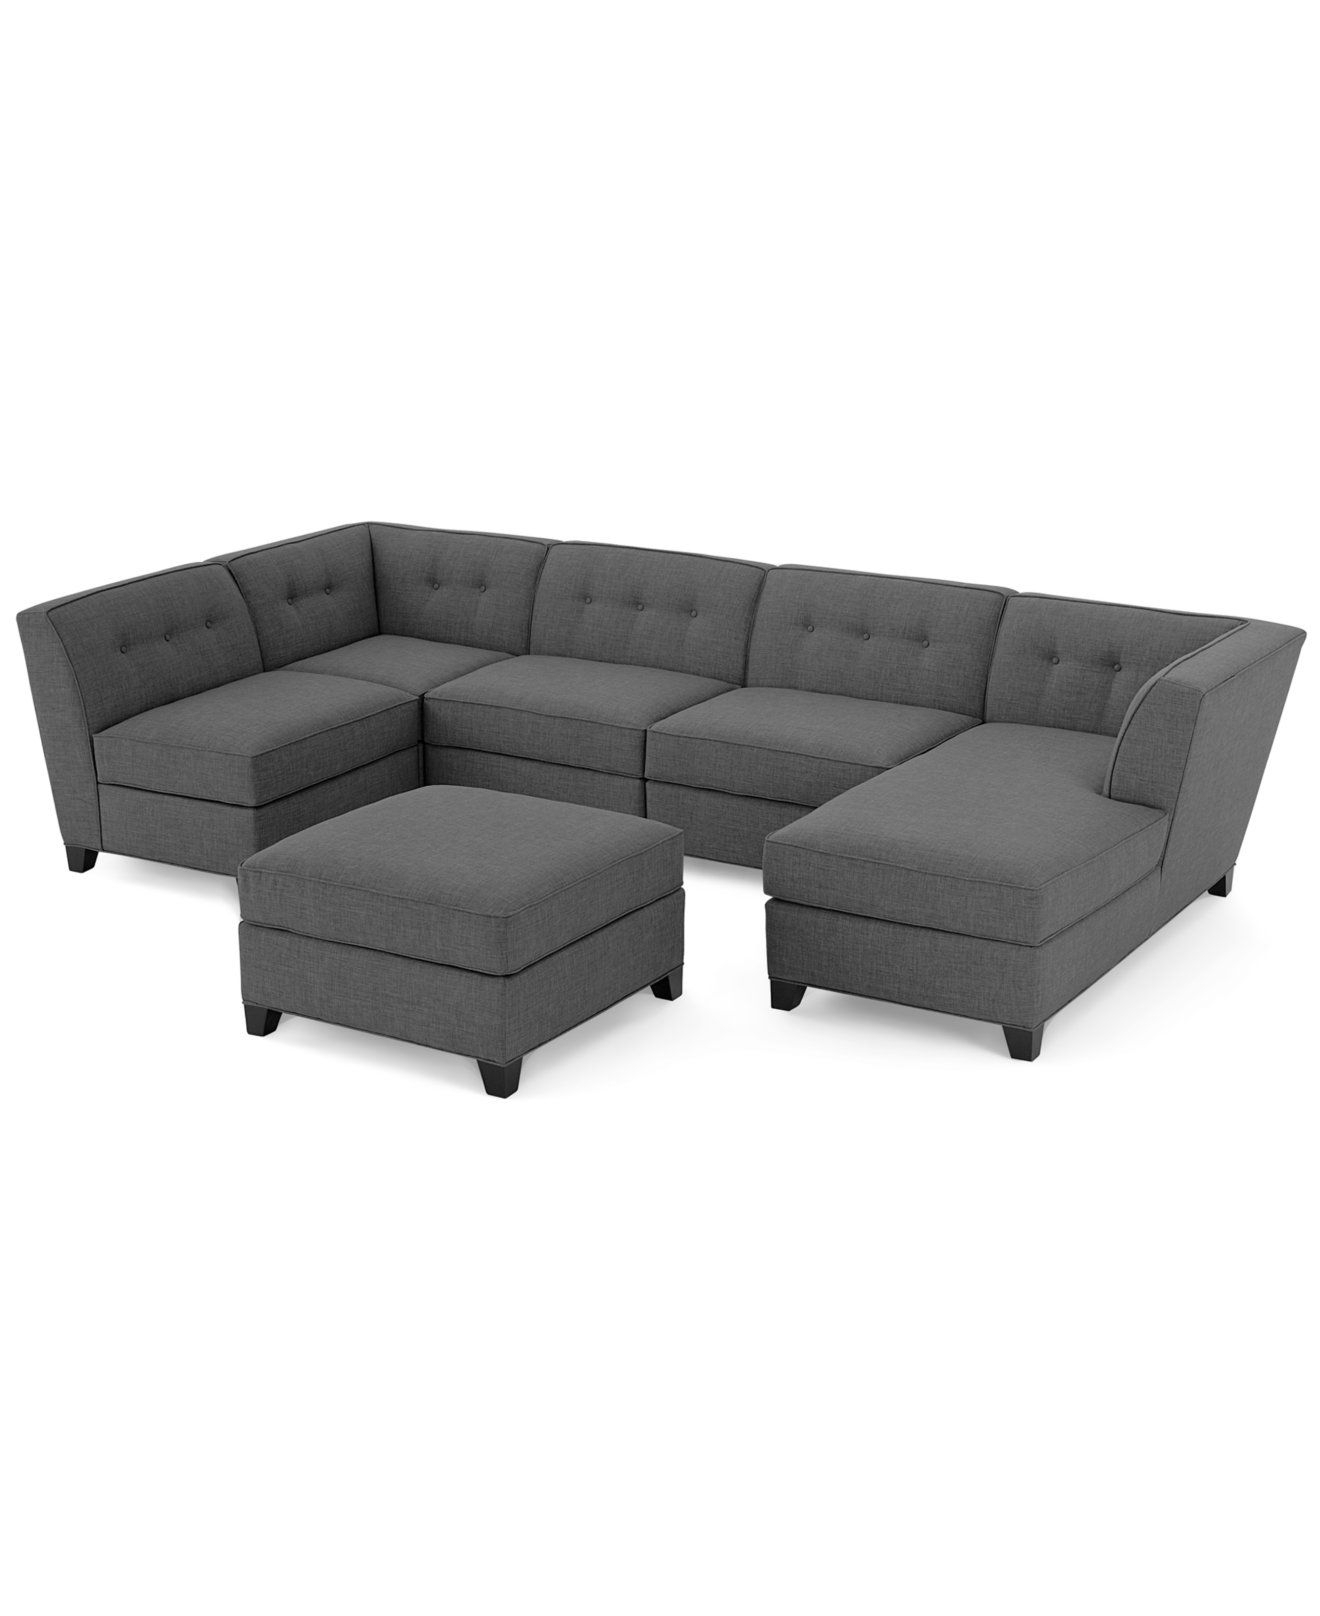 Harper Fabric Modular Sectional Sofa, 6 Piece (Square Corner Unit For Harper Down Oversized Sofa Chairs (View 8 of 25)